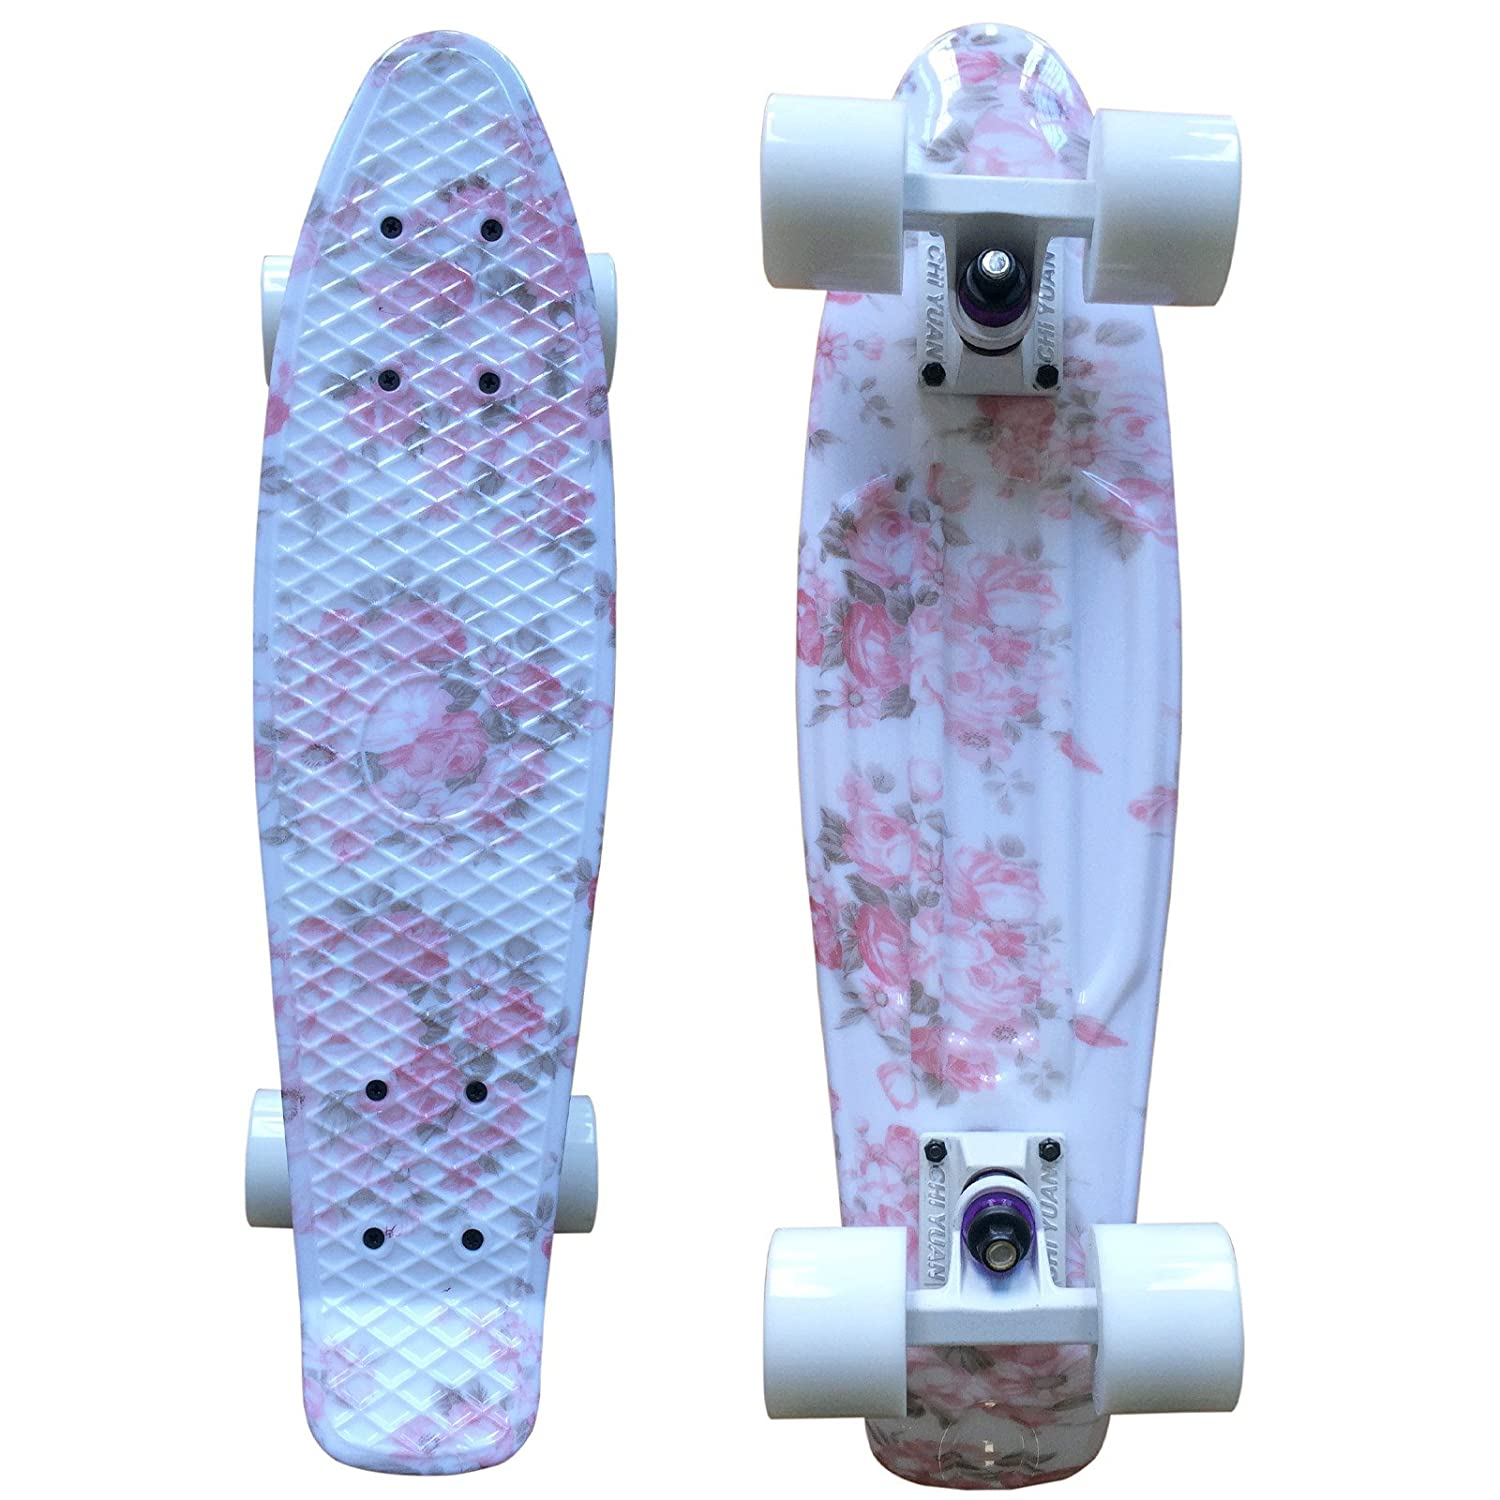 CHI YUAN Boards 22 Inch Plastic Skateboard Urban Cruiser Complete Pink Floral Graphic Print